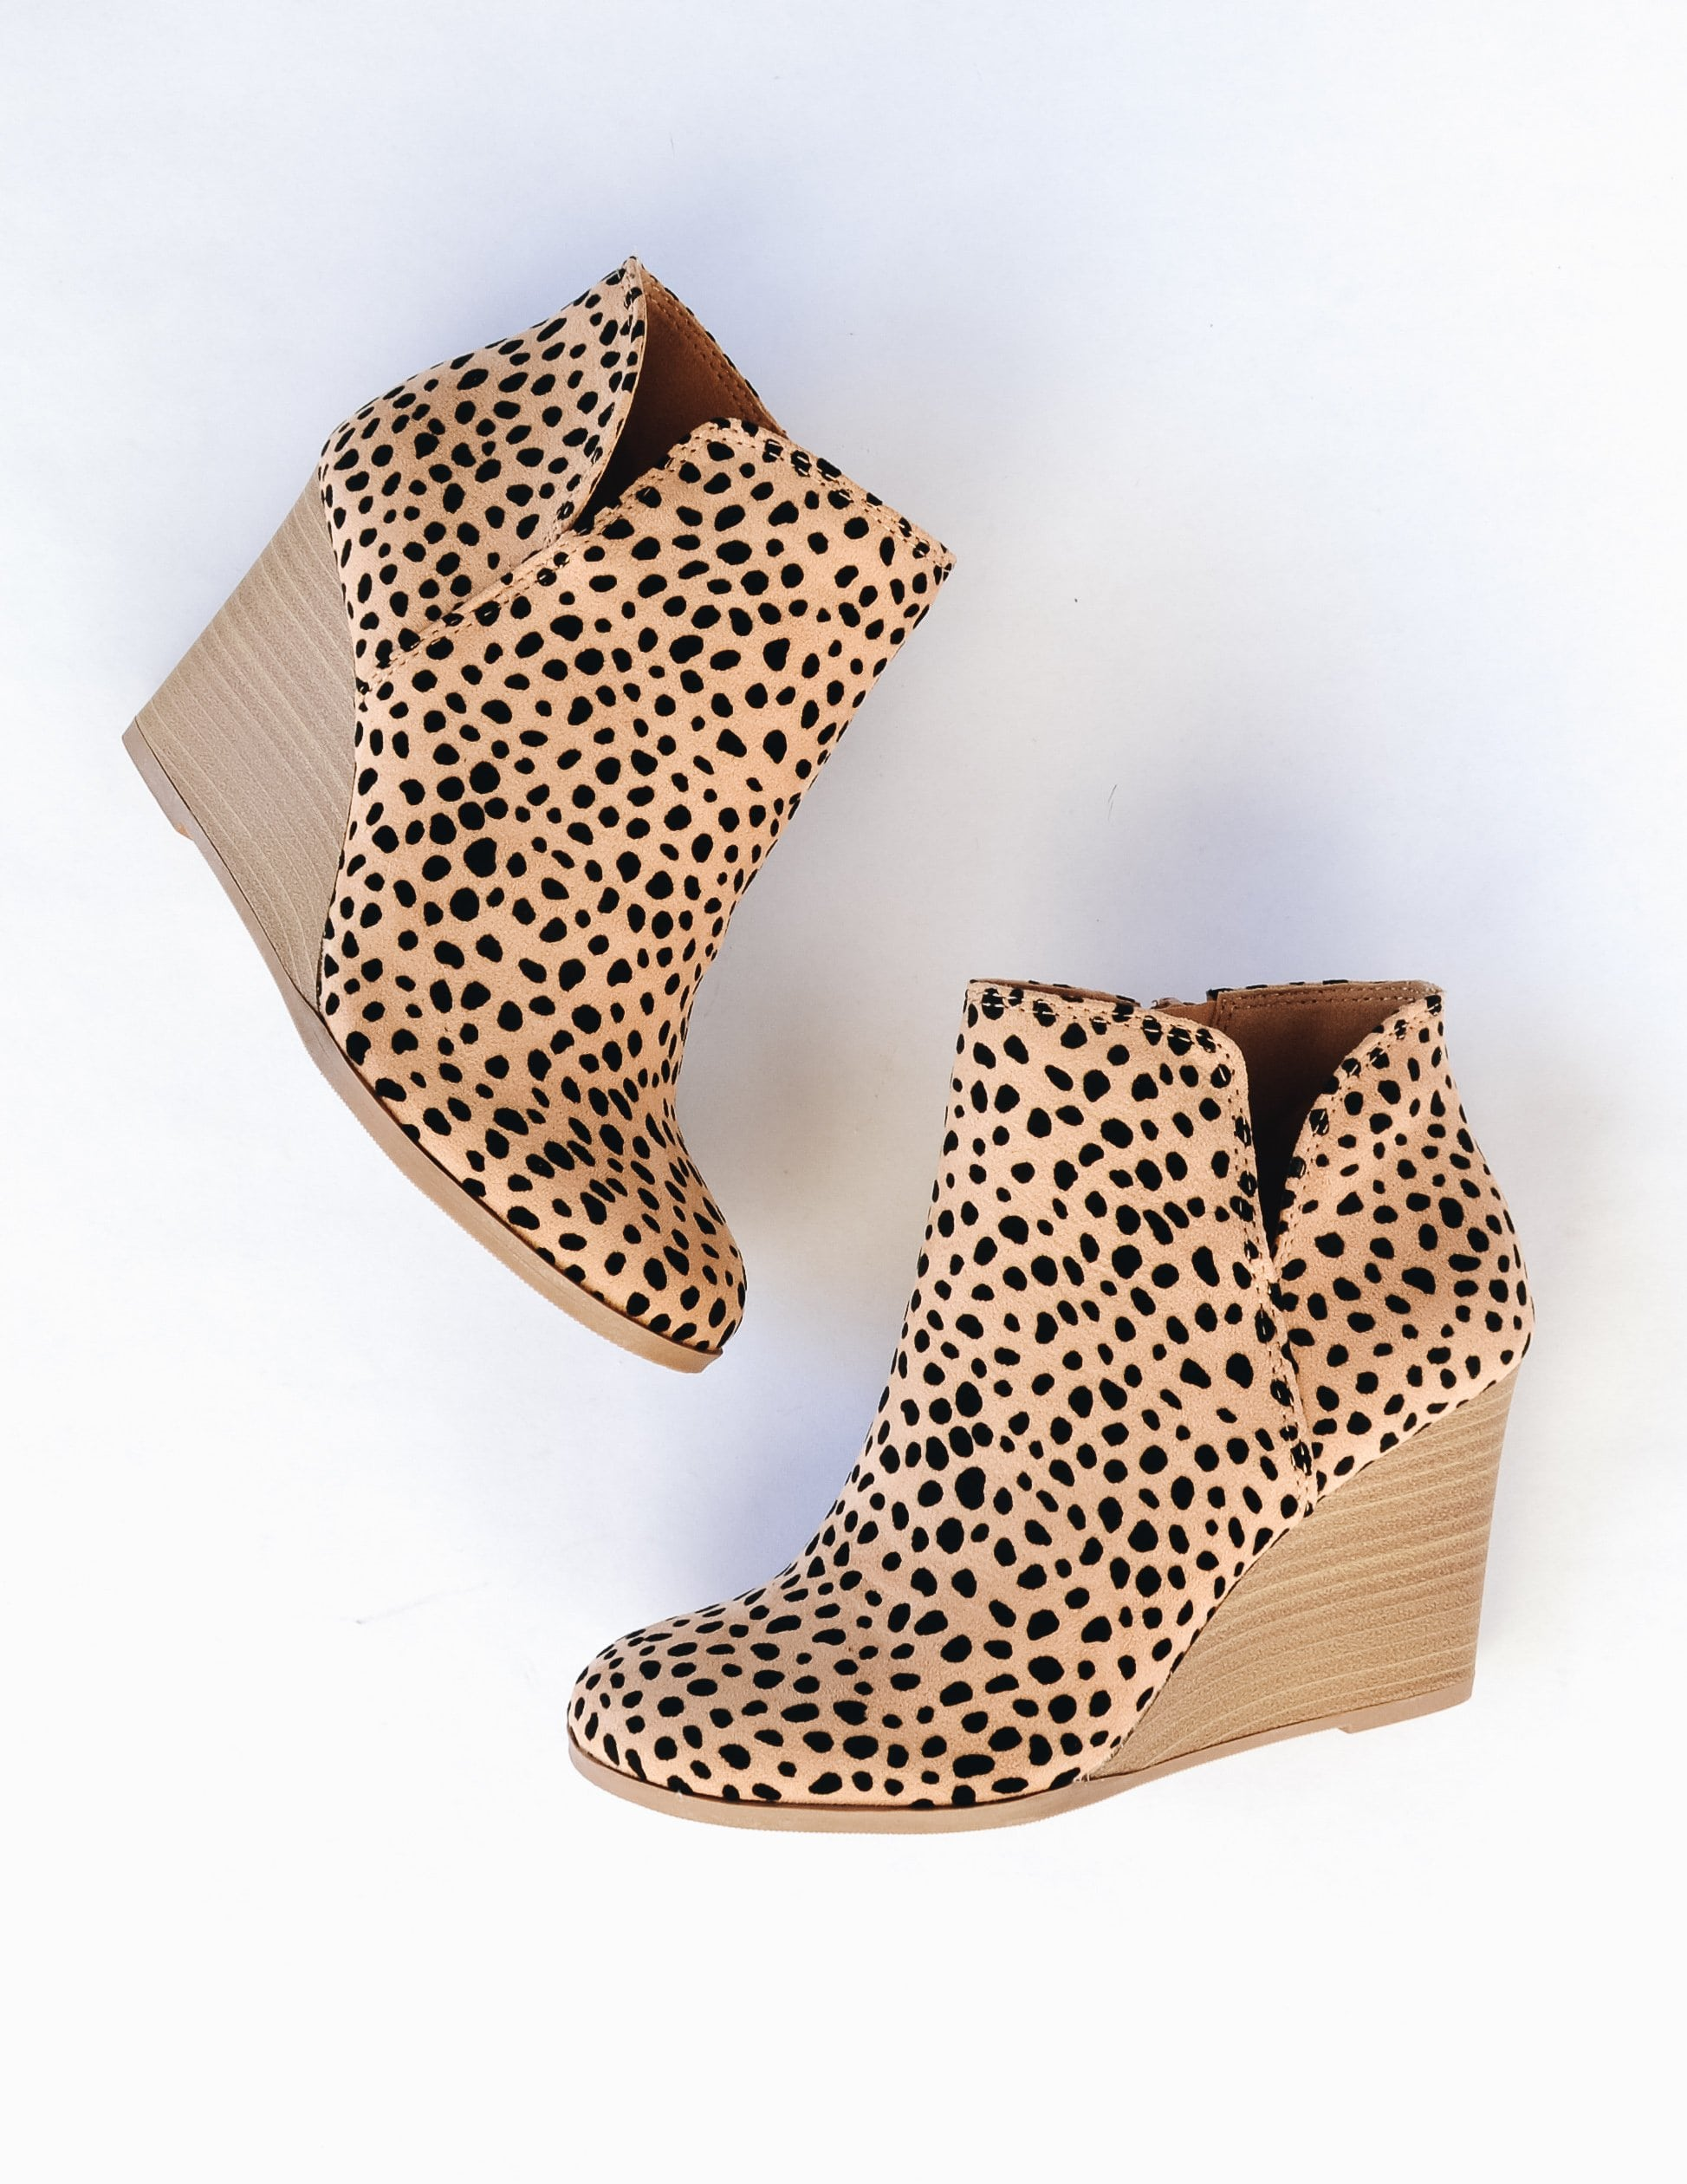 Cheetah print risk taker wedge heels laying flat on white background